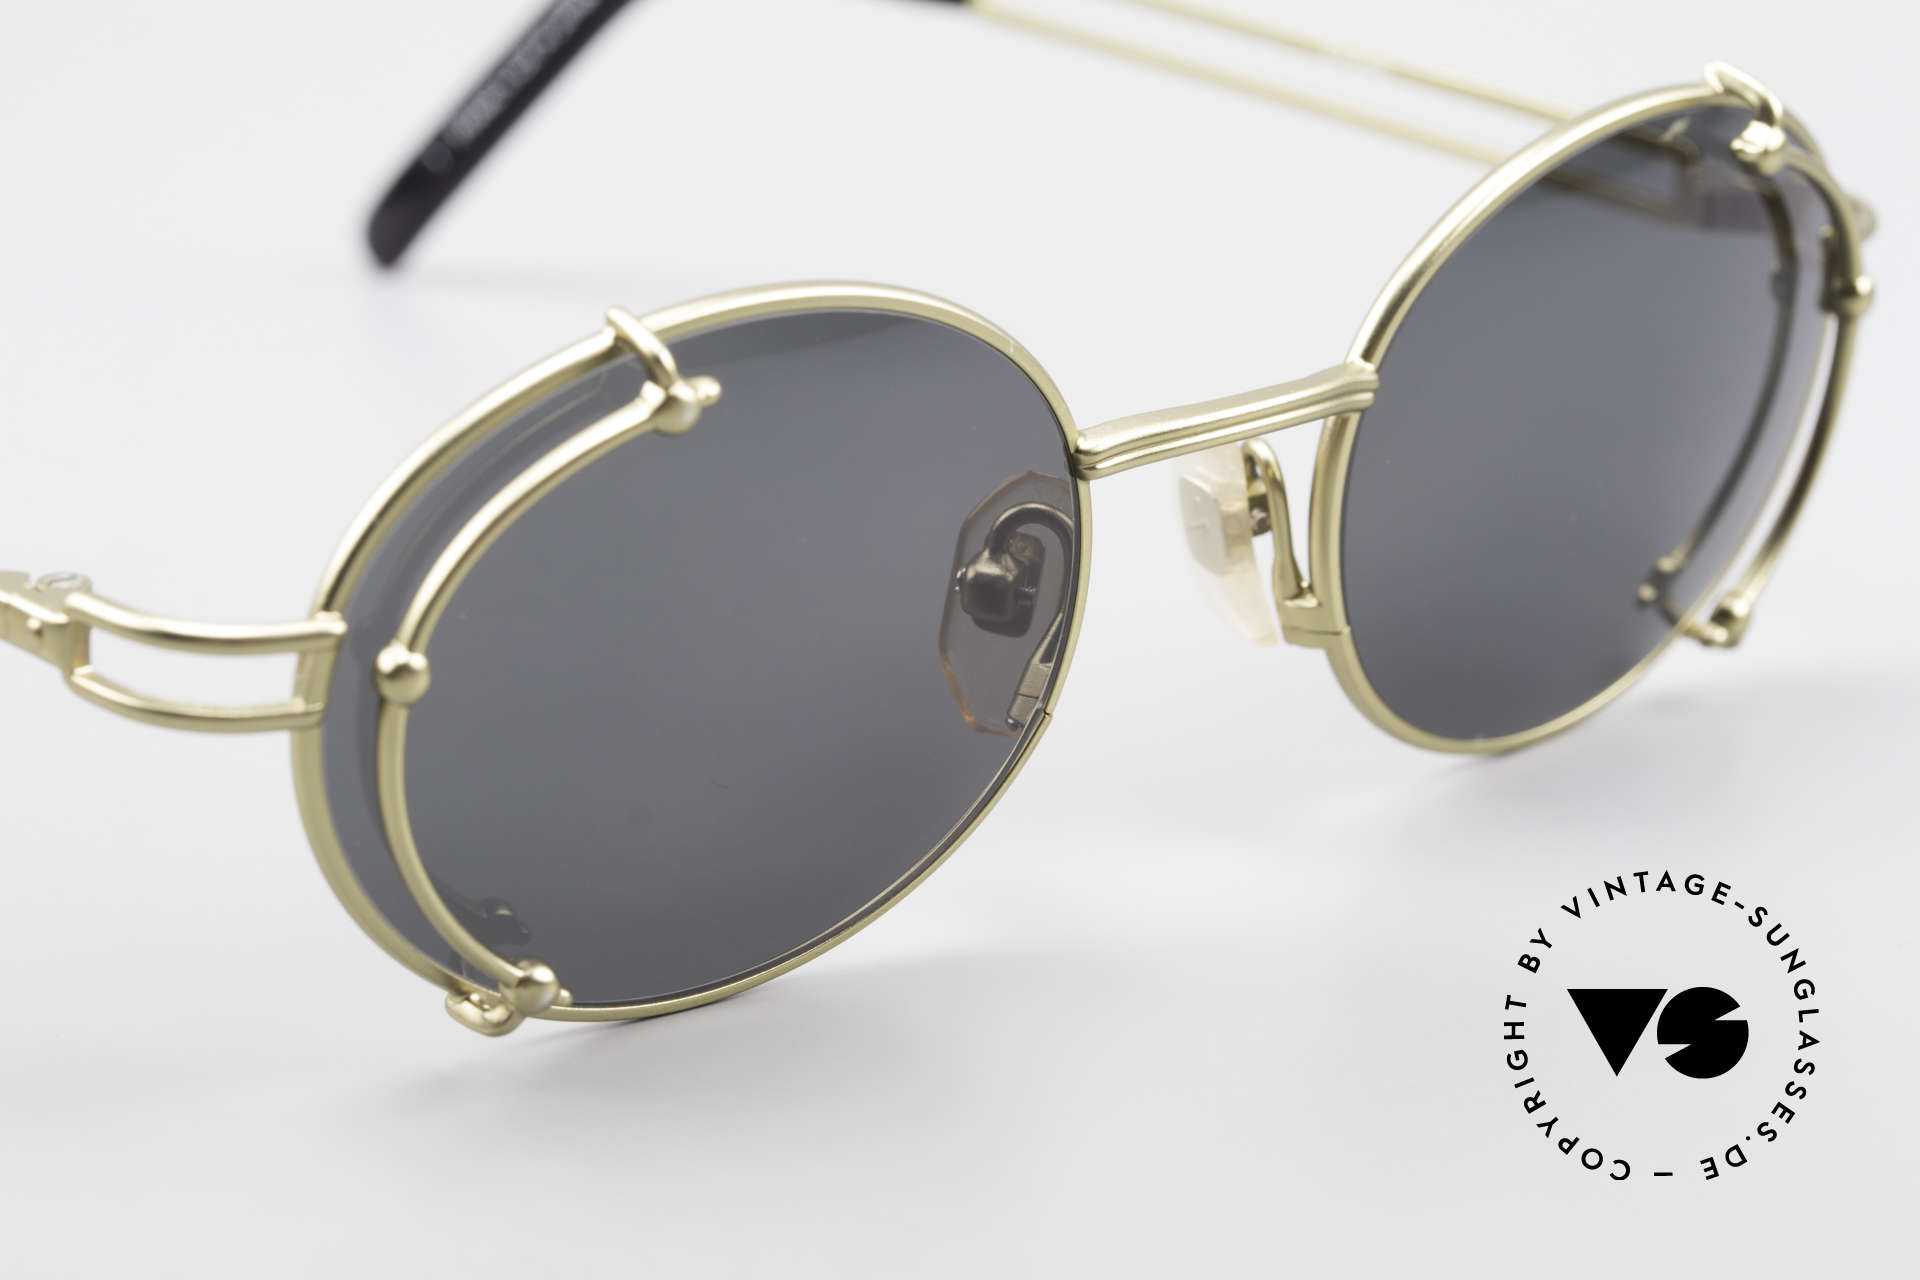 """Yohji Yamamoto 52-4107 Oval 90's Designer Sunglasses, very interesting frame finish in a kind of """"antique gold"""", Made for Men and Women"""